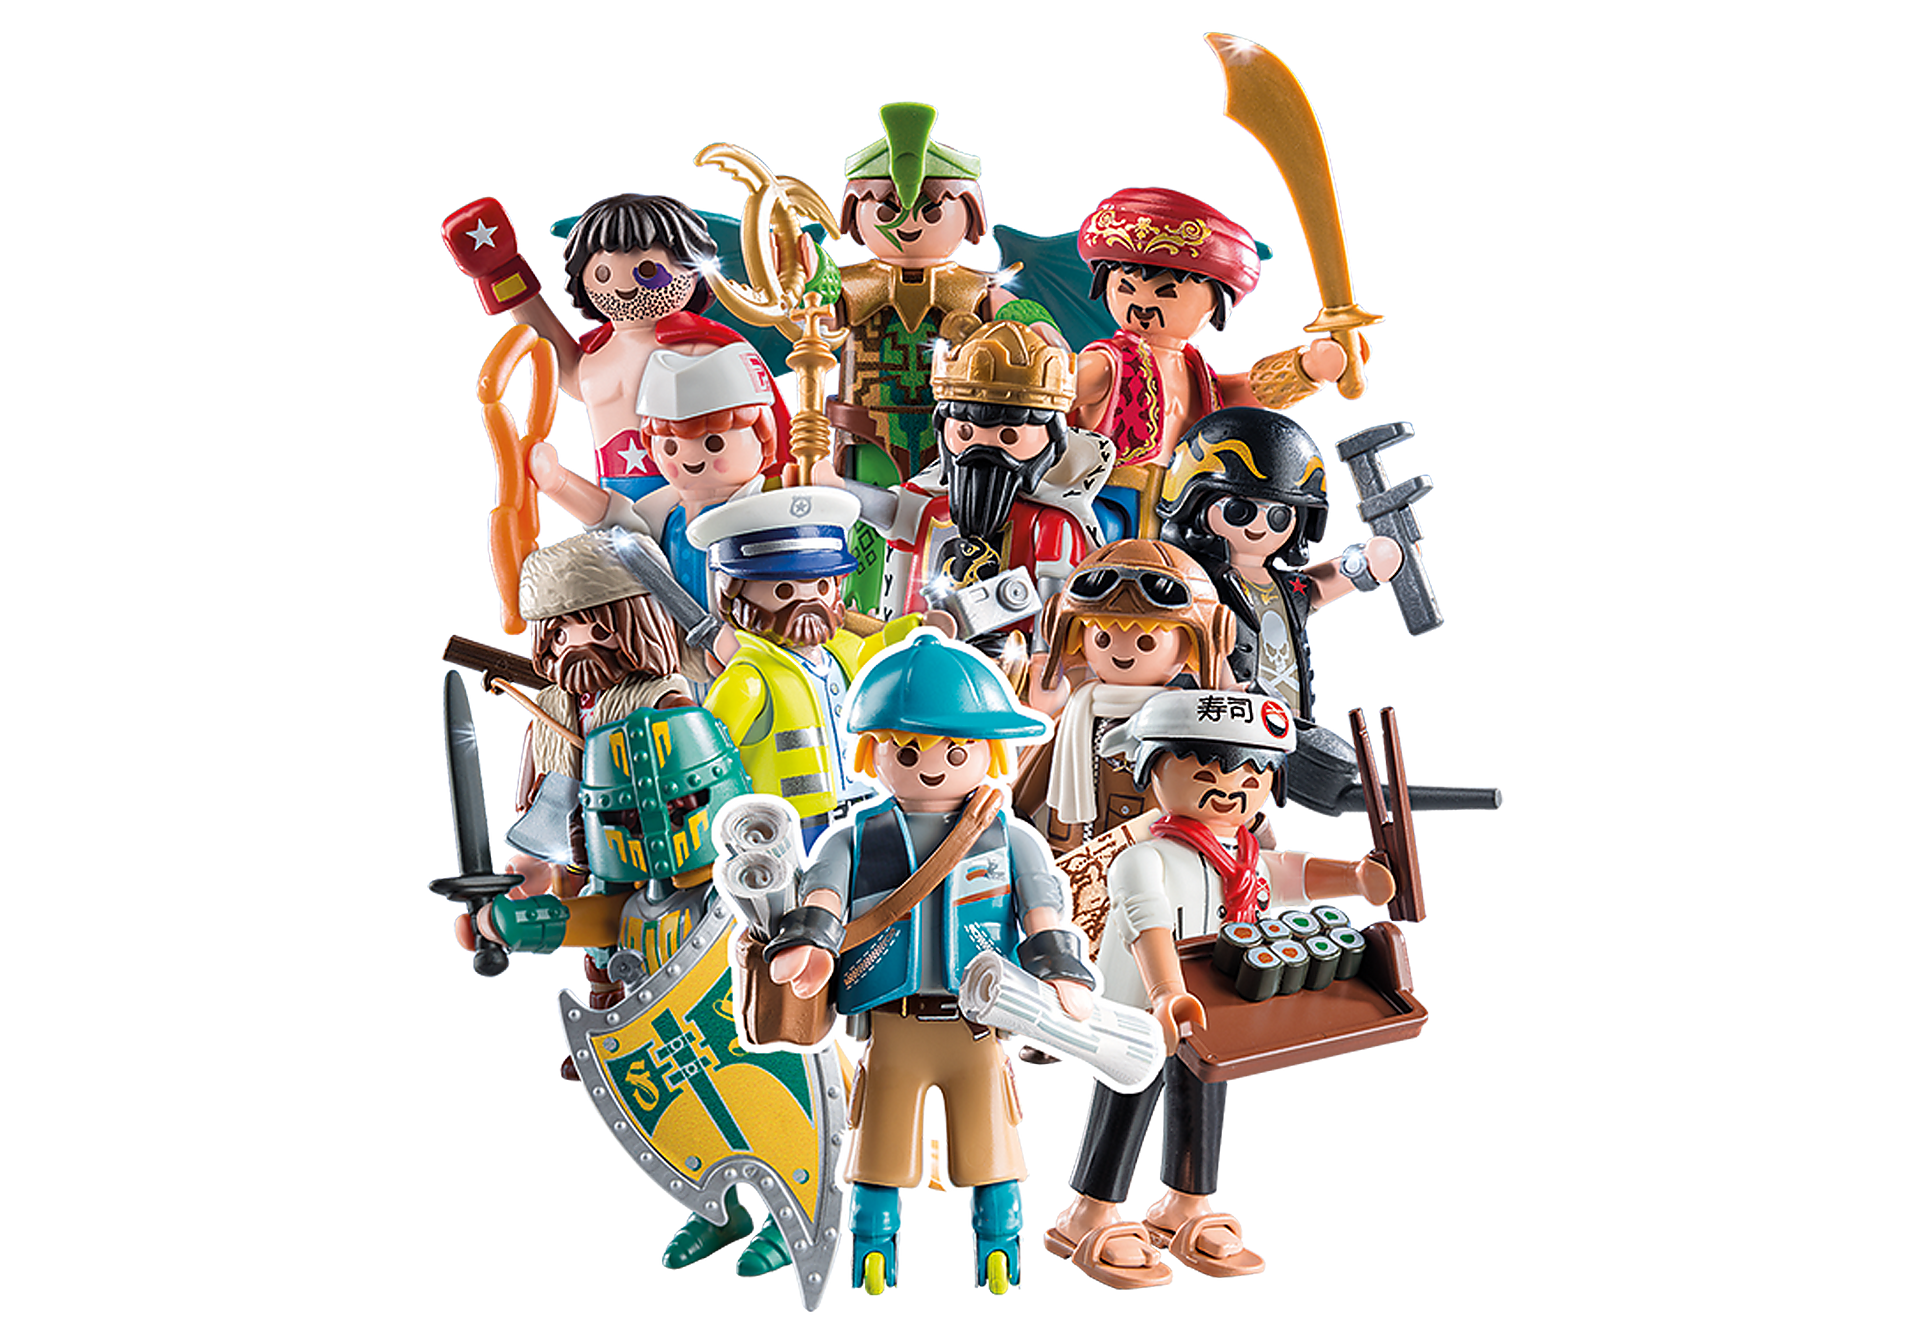 9332 PLAYMOBIL-Figures Boys (Serie 13) zoom image2